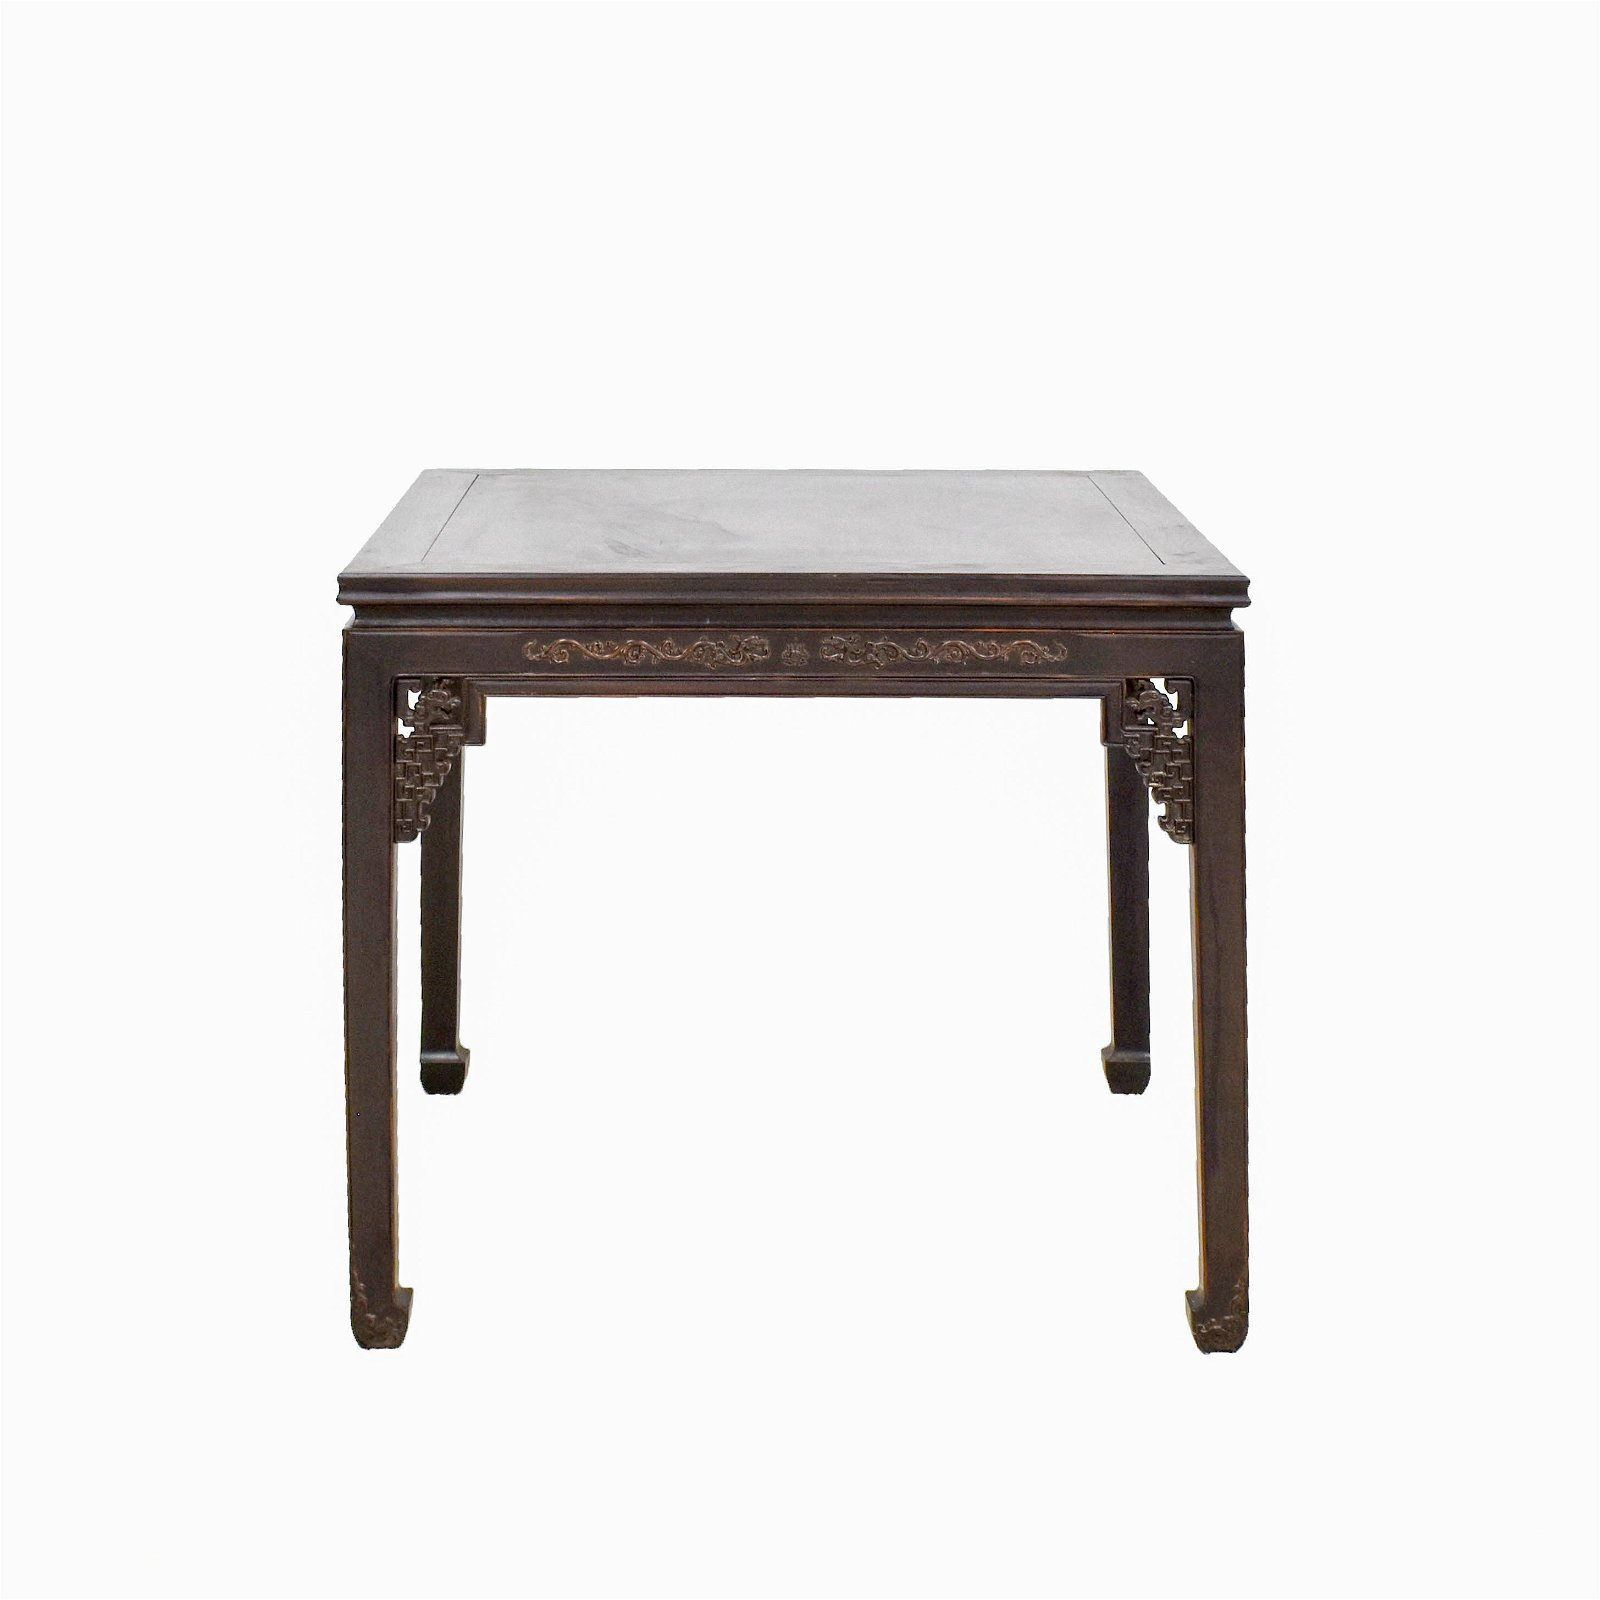 19TH C CARVED ZITAN WAISTED SQUARE TABLE